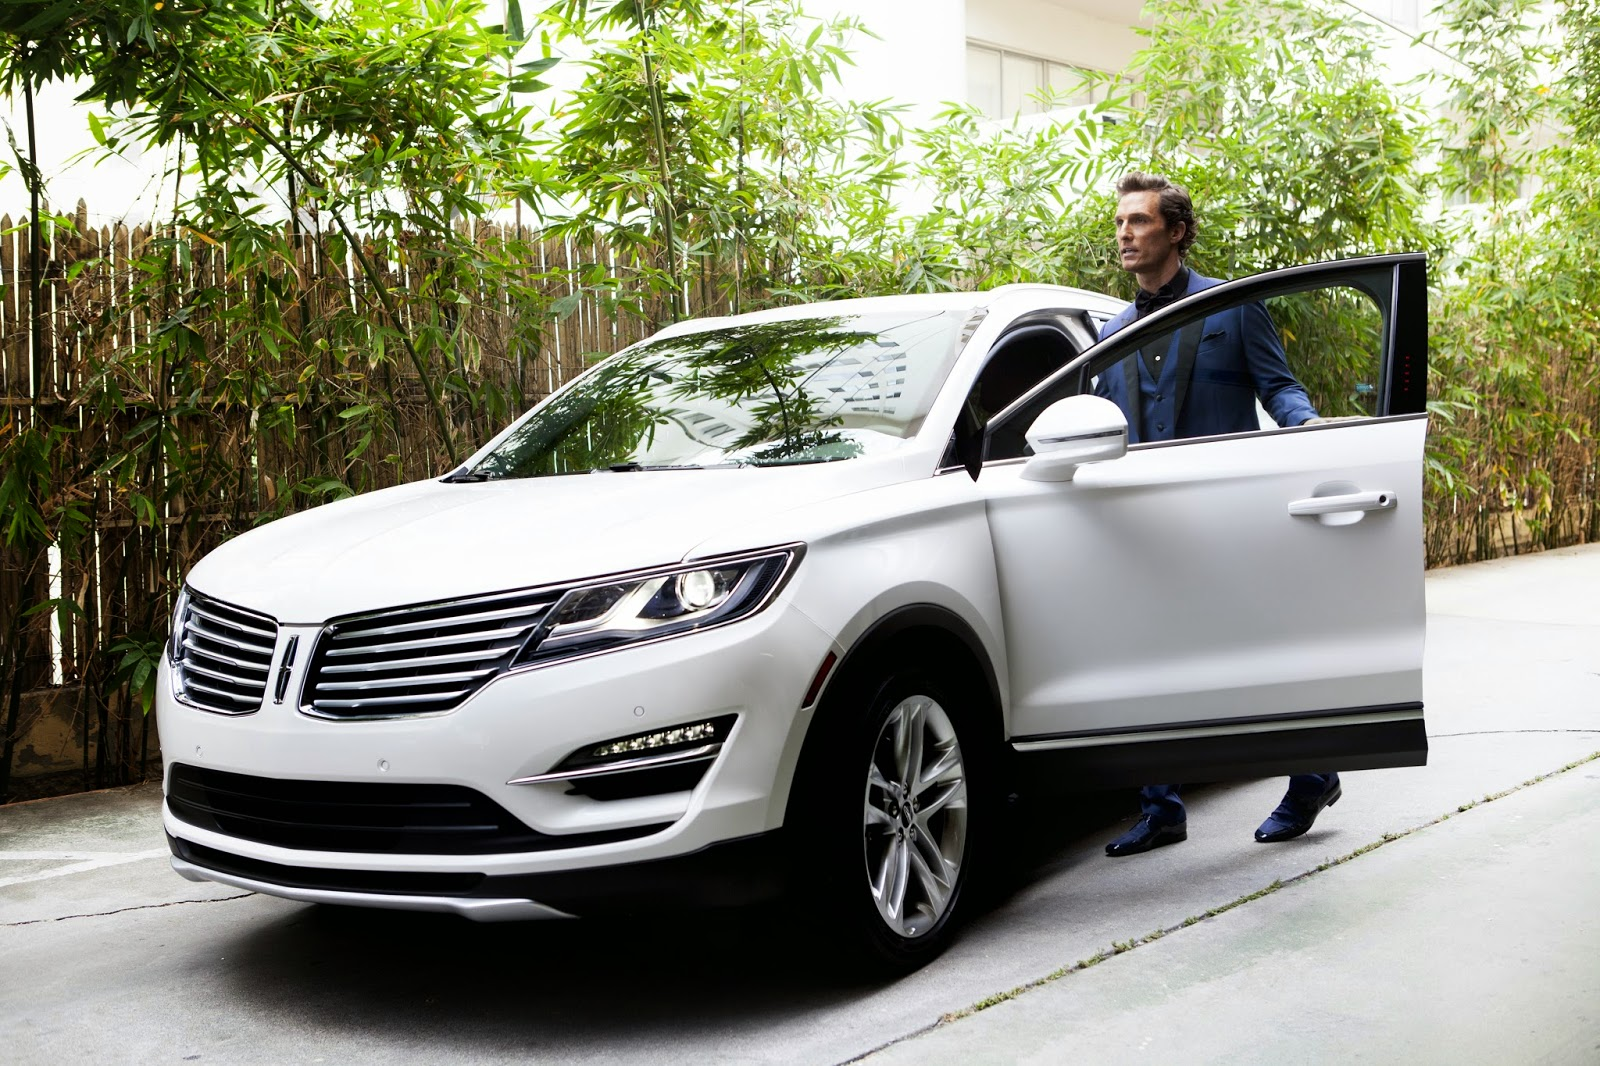 2015 Lincoln MKC Has Arrived to Don Tester Ford Lincoln!